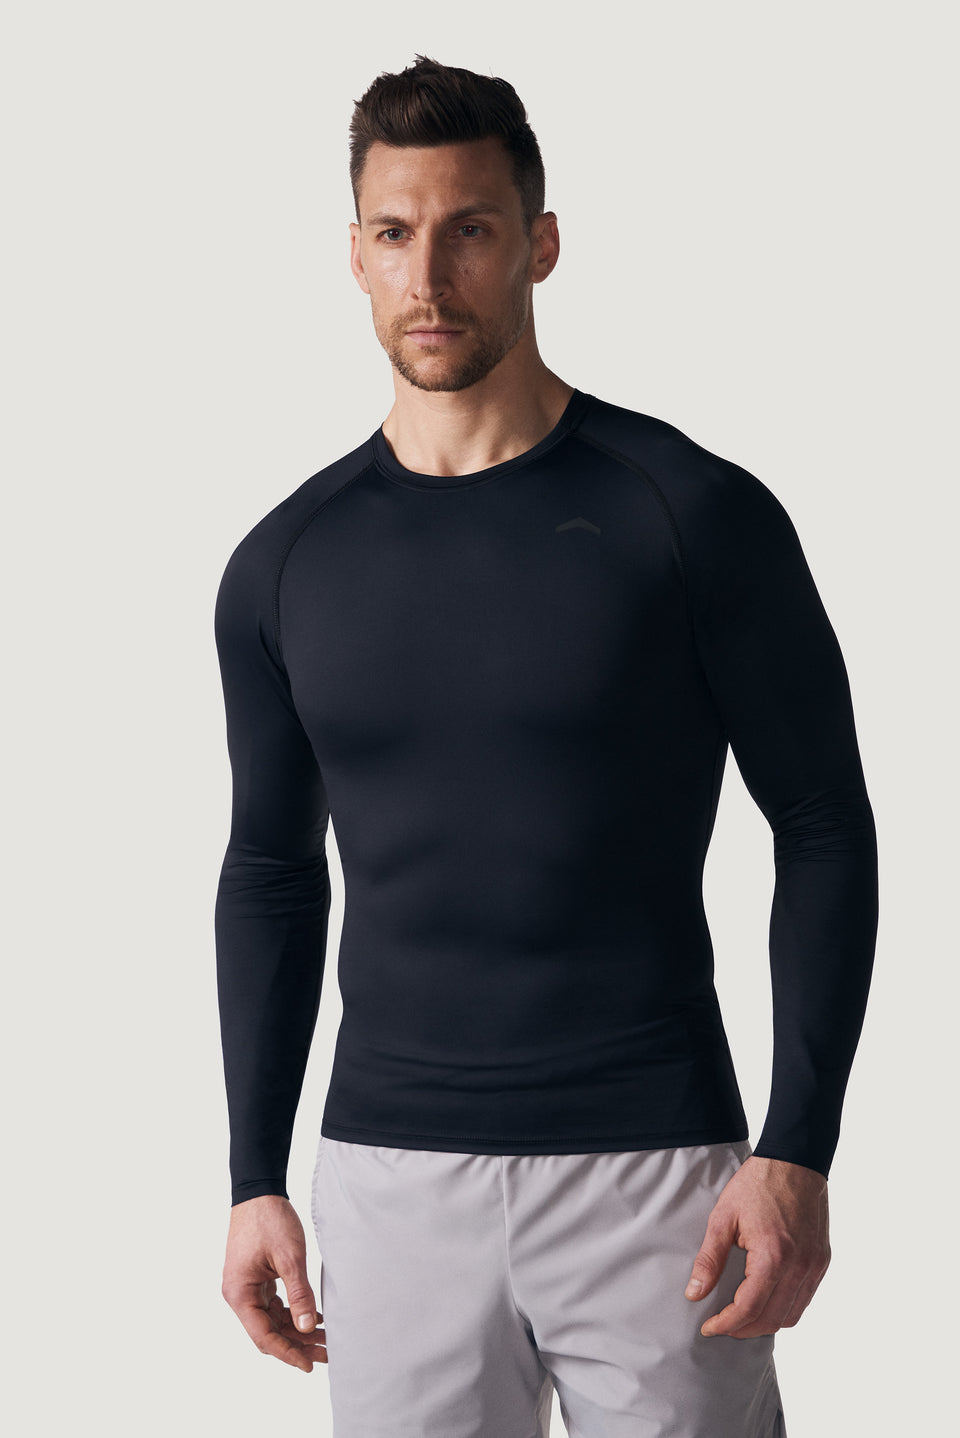 TMPL Sportswear Men's Progress Longsleeve Compression Jersey